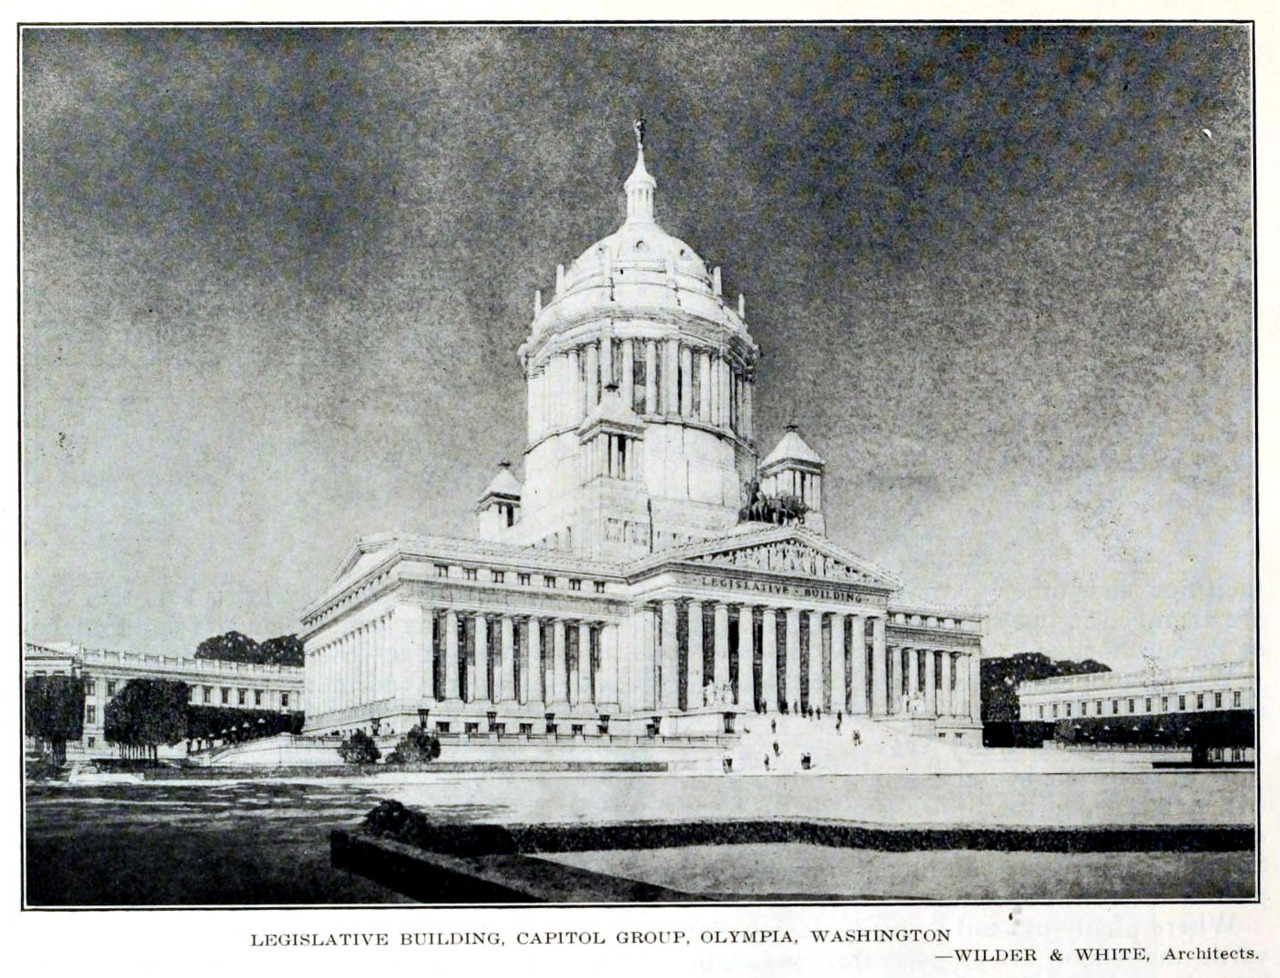 The projected Legislative Building, Olympia, Washington